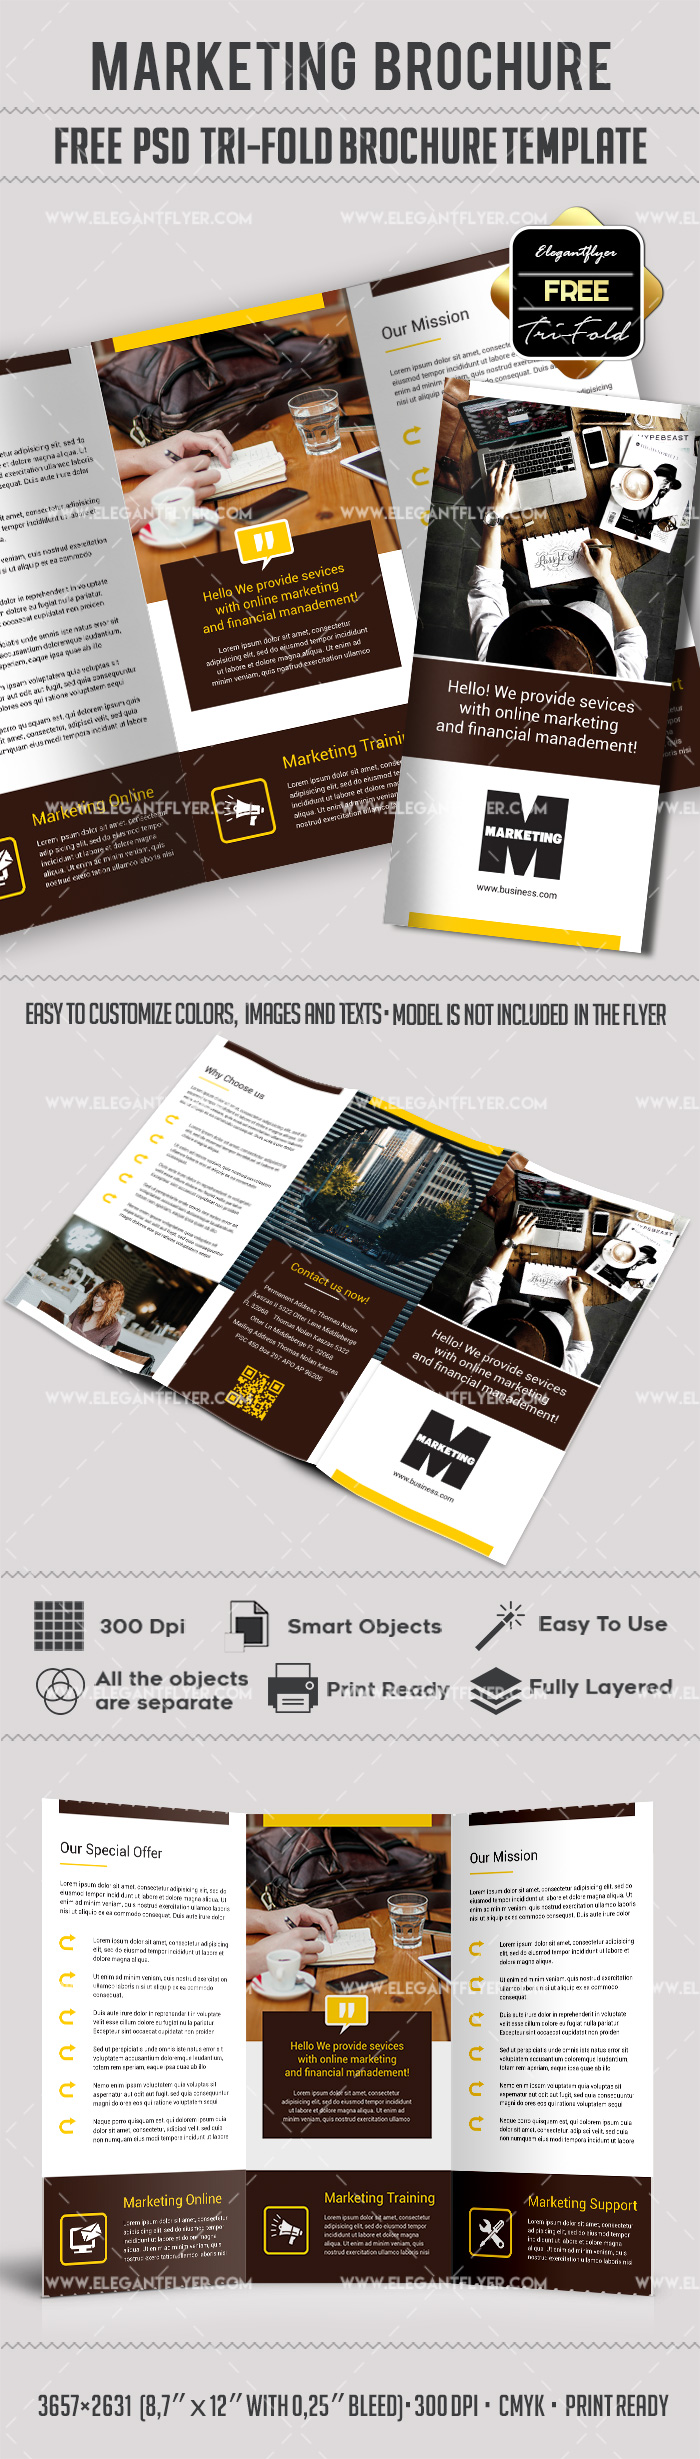 free templates brochure - marketing free tri fold psd brochure template by